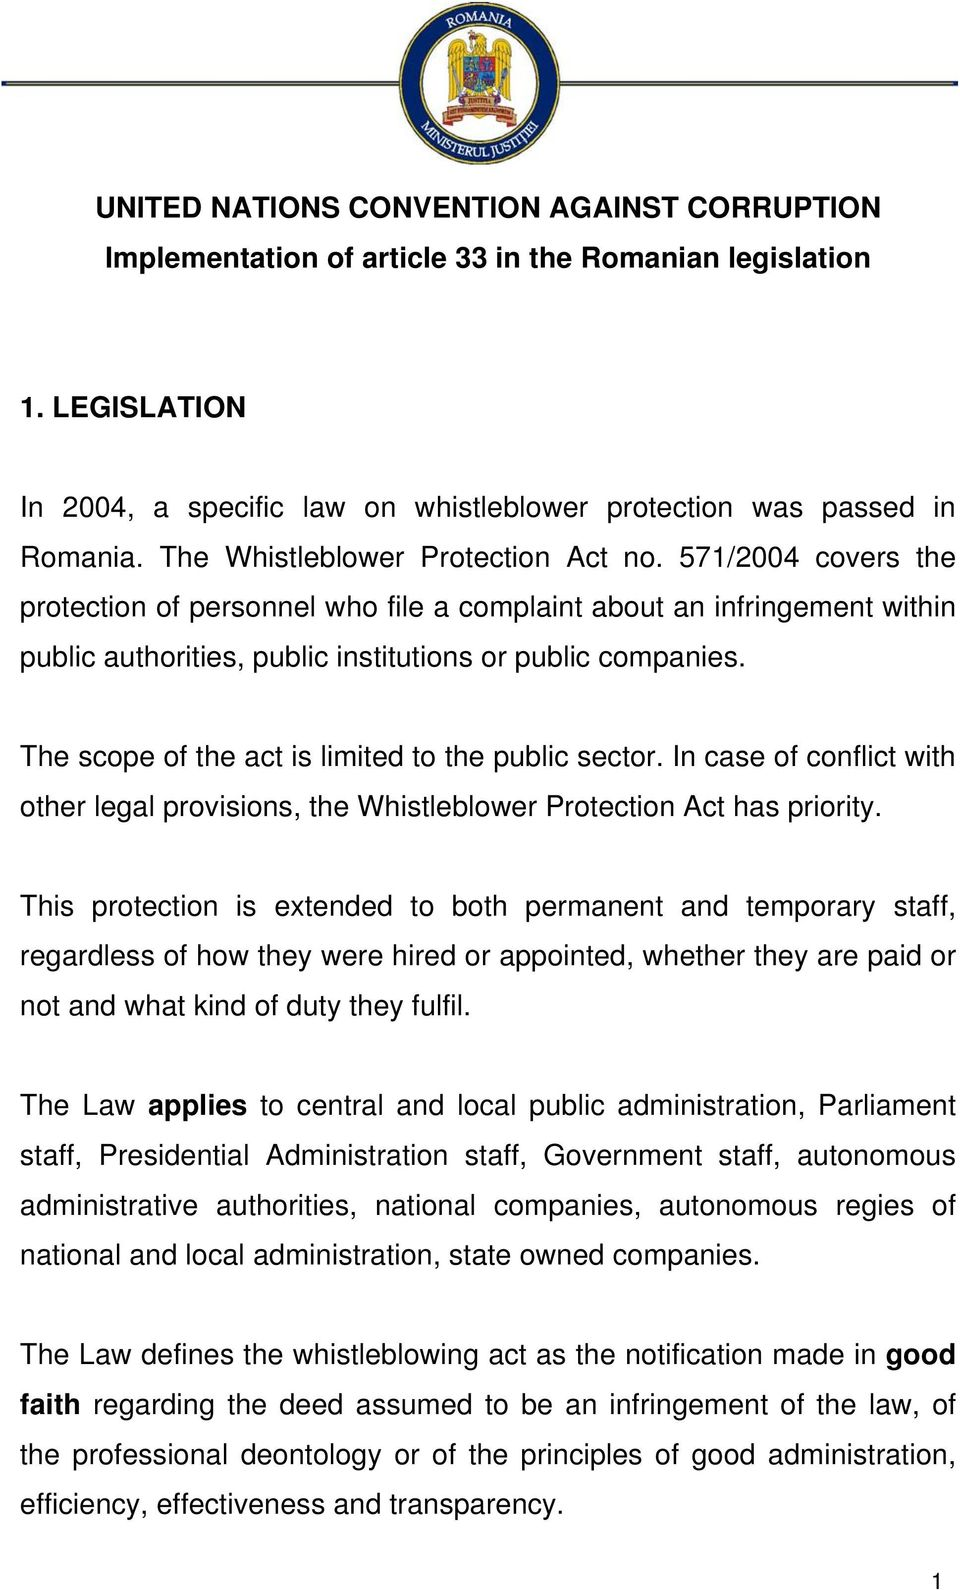 The scope of the act is limited to the public sector. In case of conflict with other legal provisions, the Whistleblower Protection Act has priority.